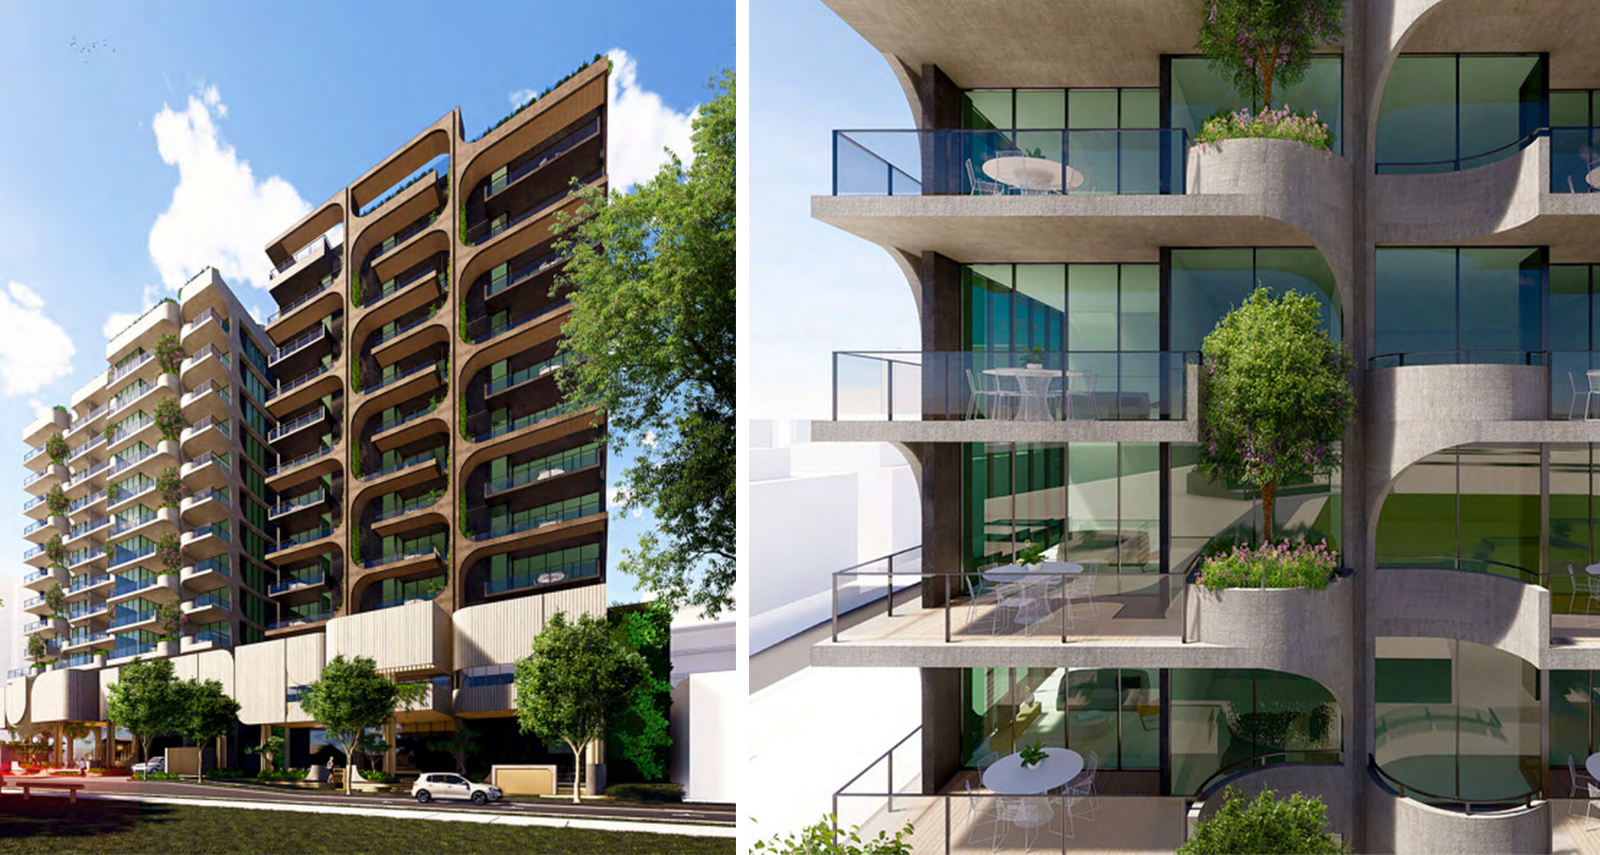 Architecture firm Rothelowman will lead the design of the two 12-storey towers.